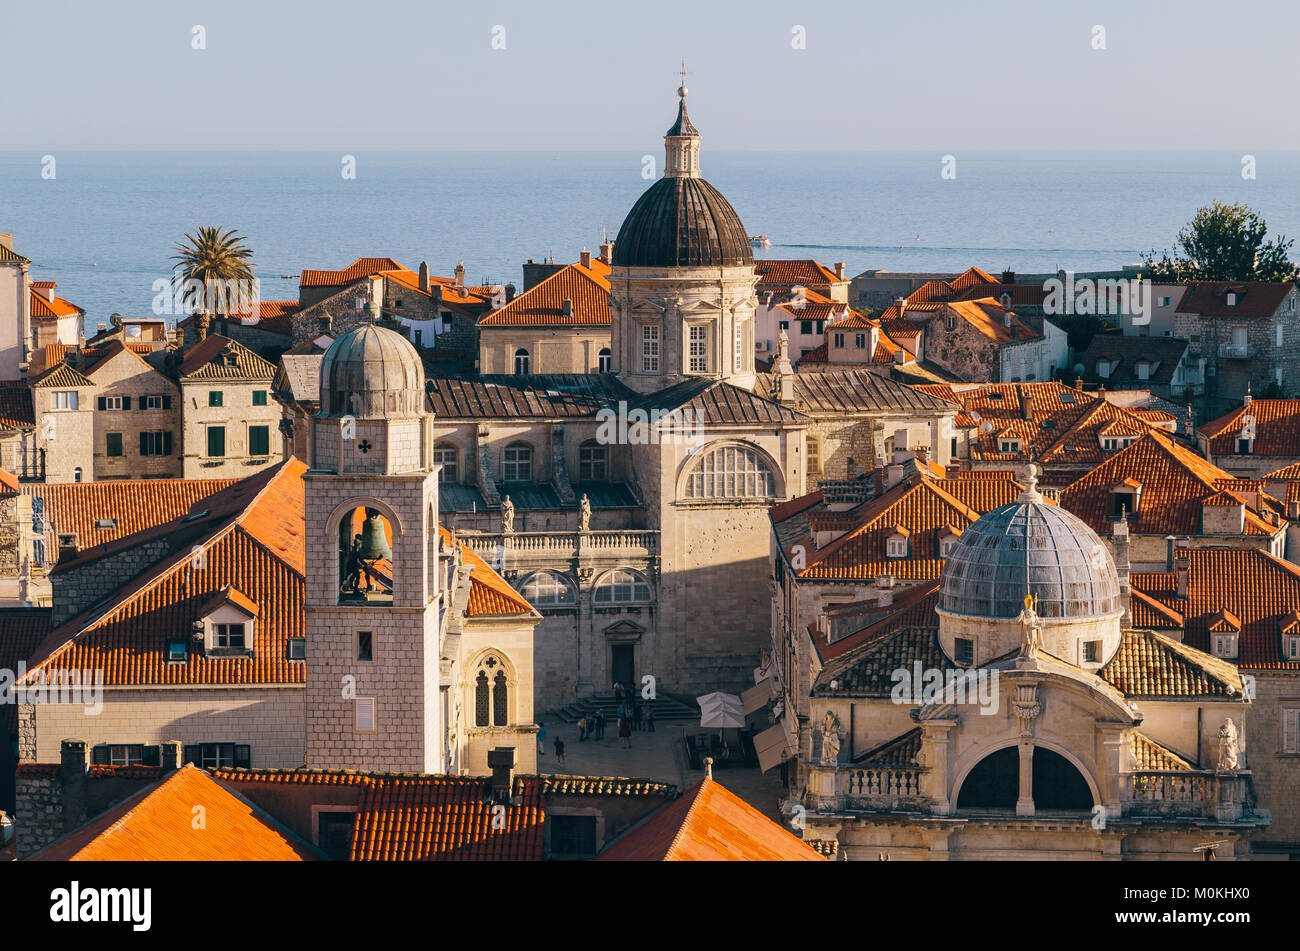 Panoramic view of the historic town of Dubrovnik, one of the most famous tourist destinations in the Mediterranean - Stock Image